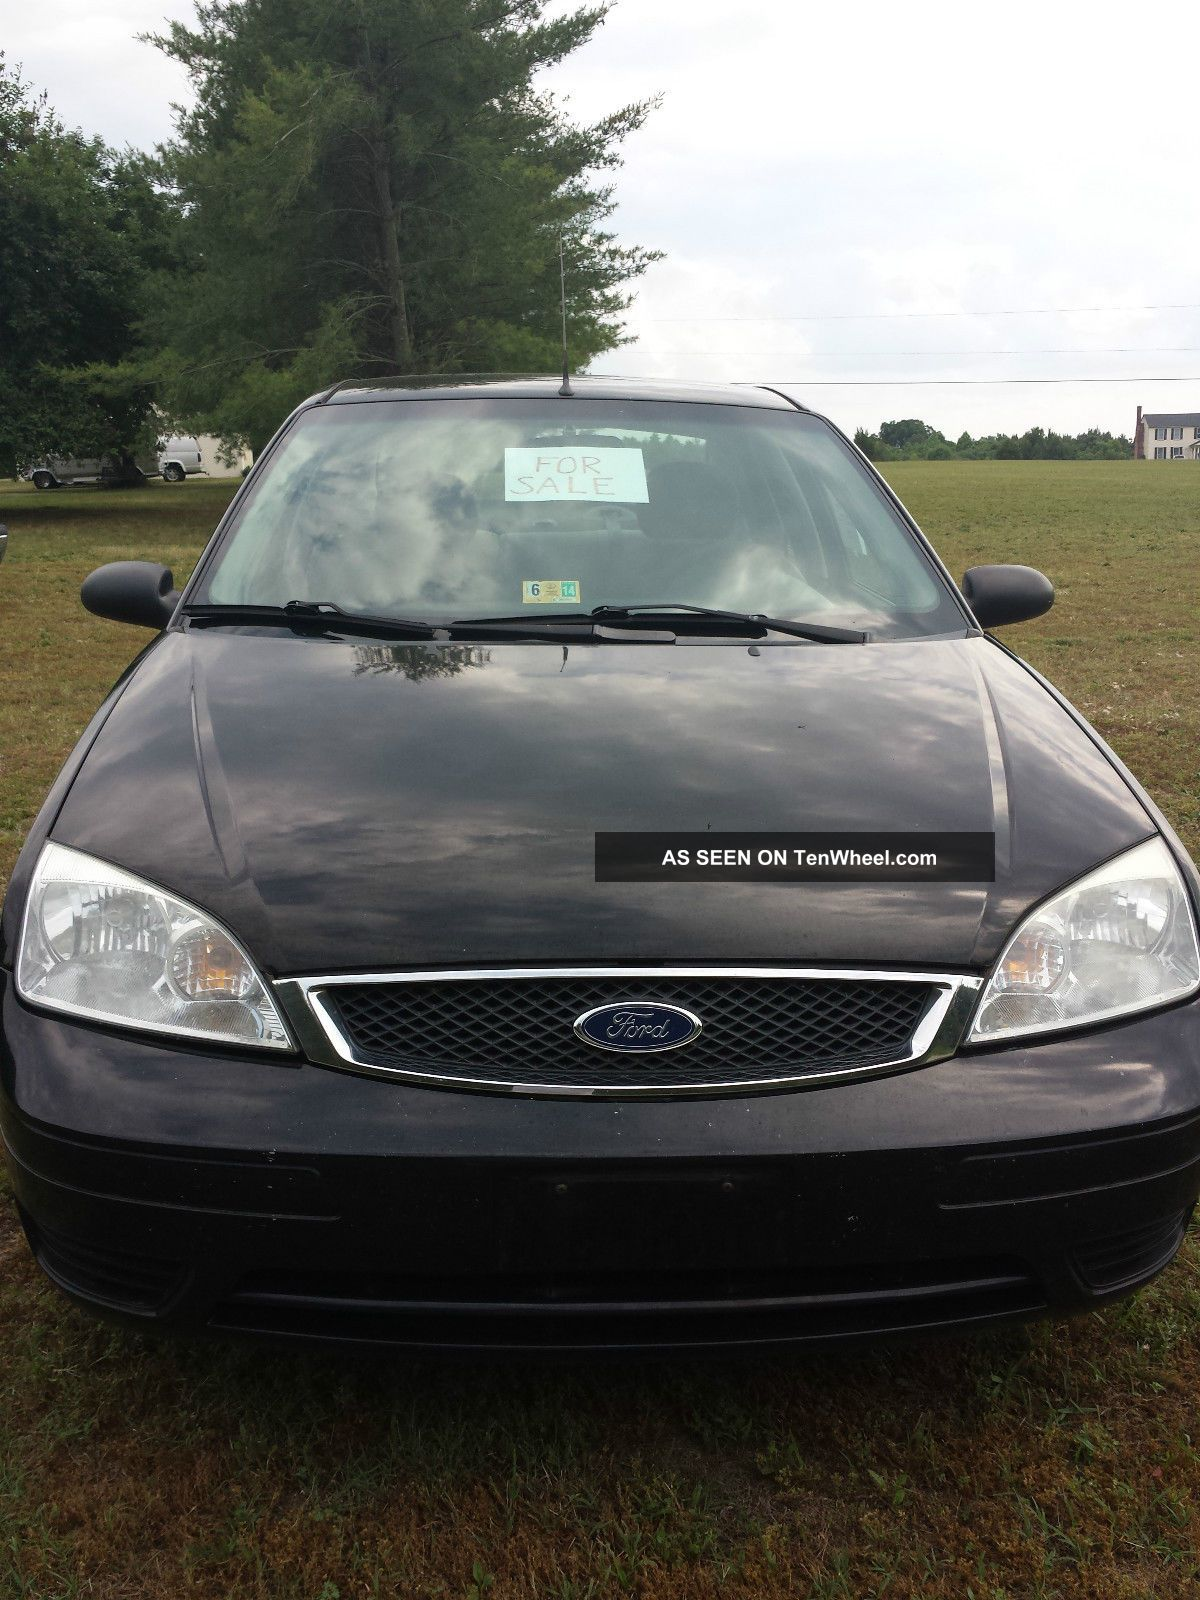 2007 Ford Focus Zx4 Se 4 Door Sedan 4 Cyl. Focus photo